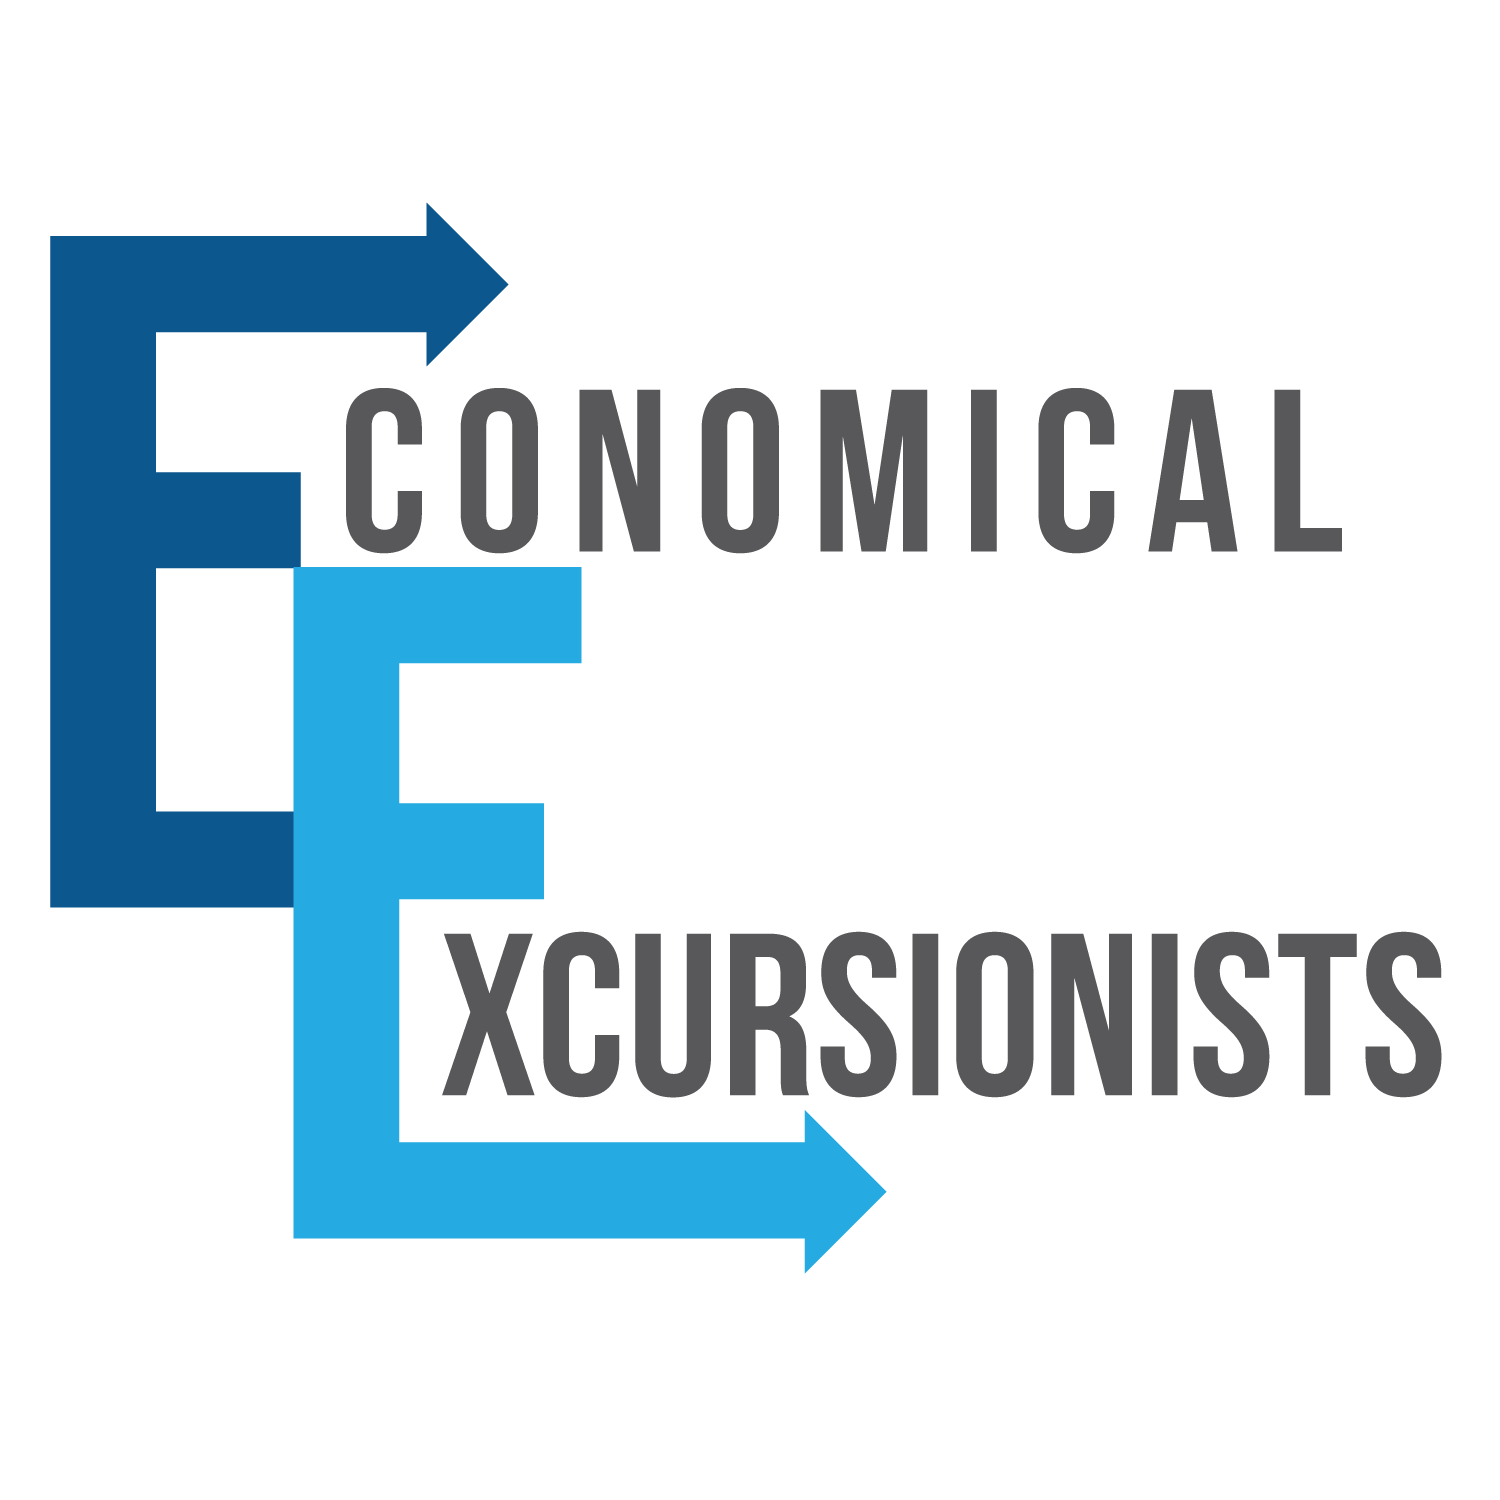 Learn to redeem points and miles with the EconomicalExcursionists